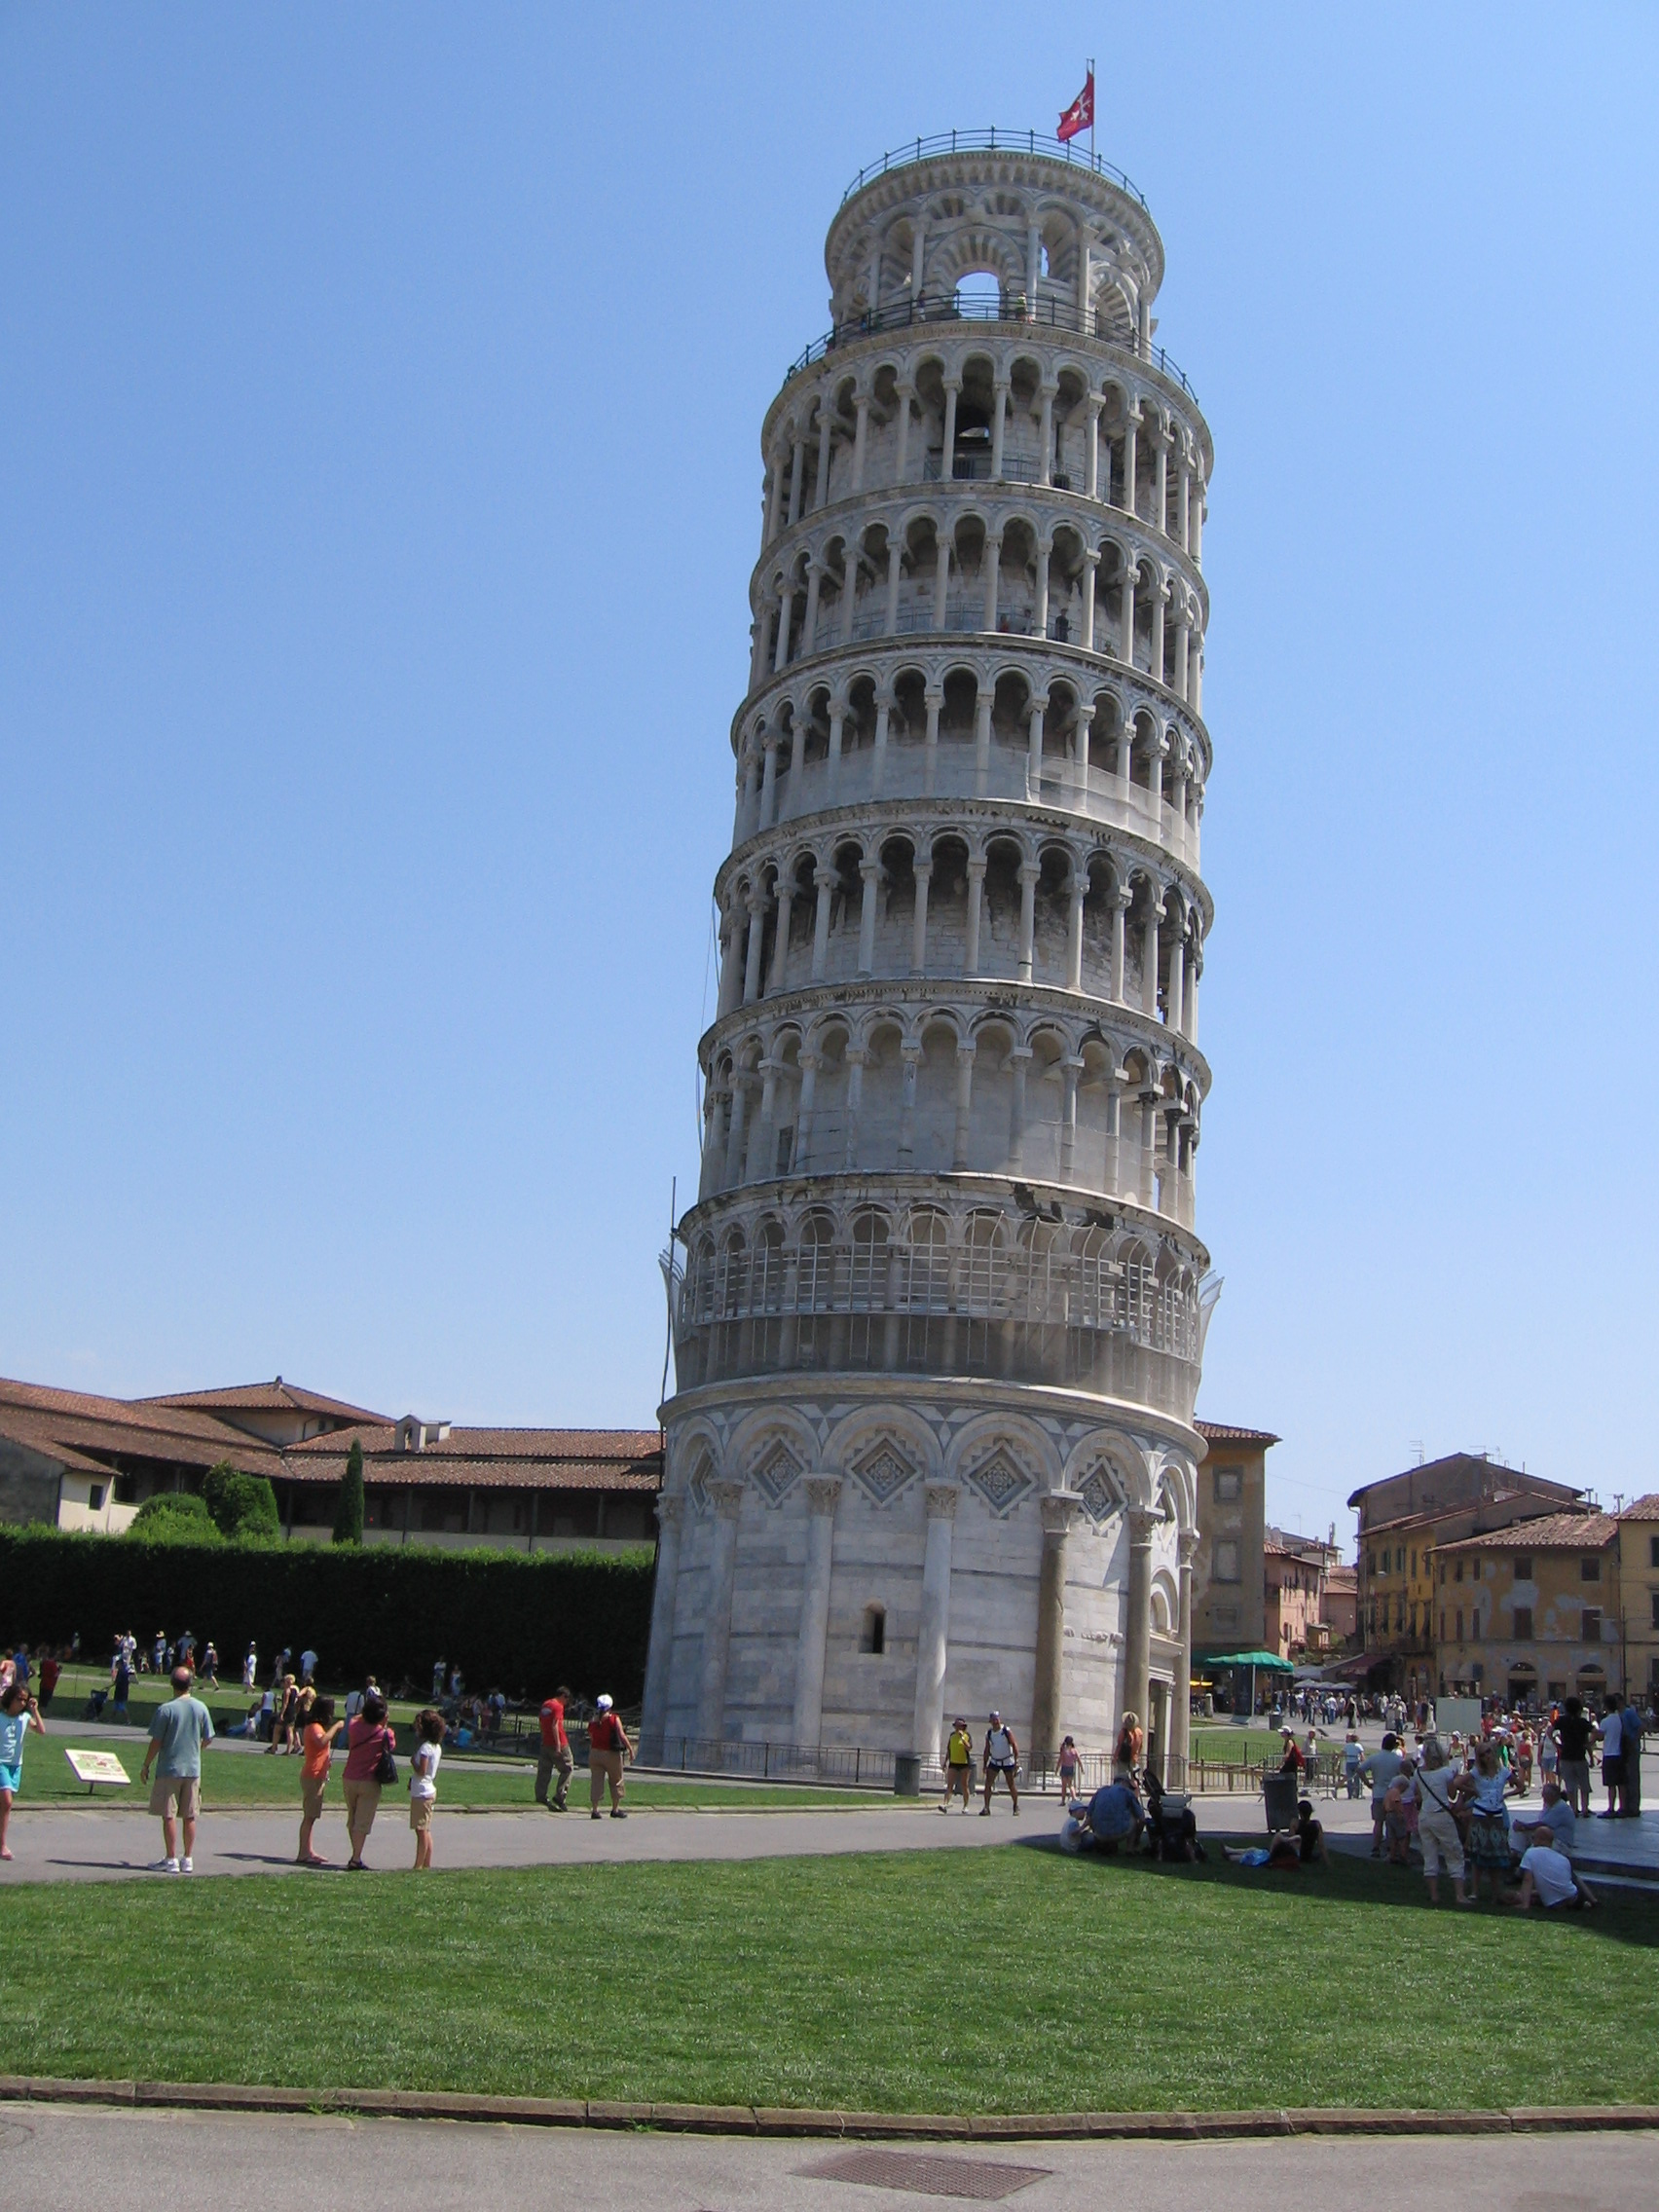 Friday's Photos – Tower of Pisa